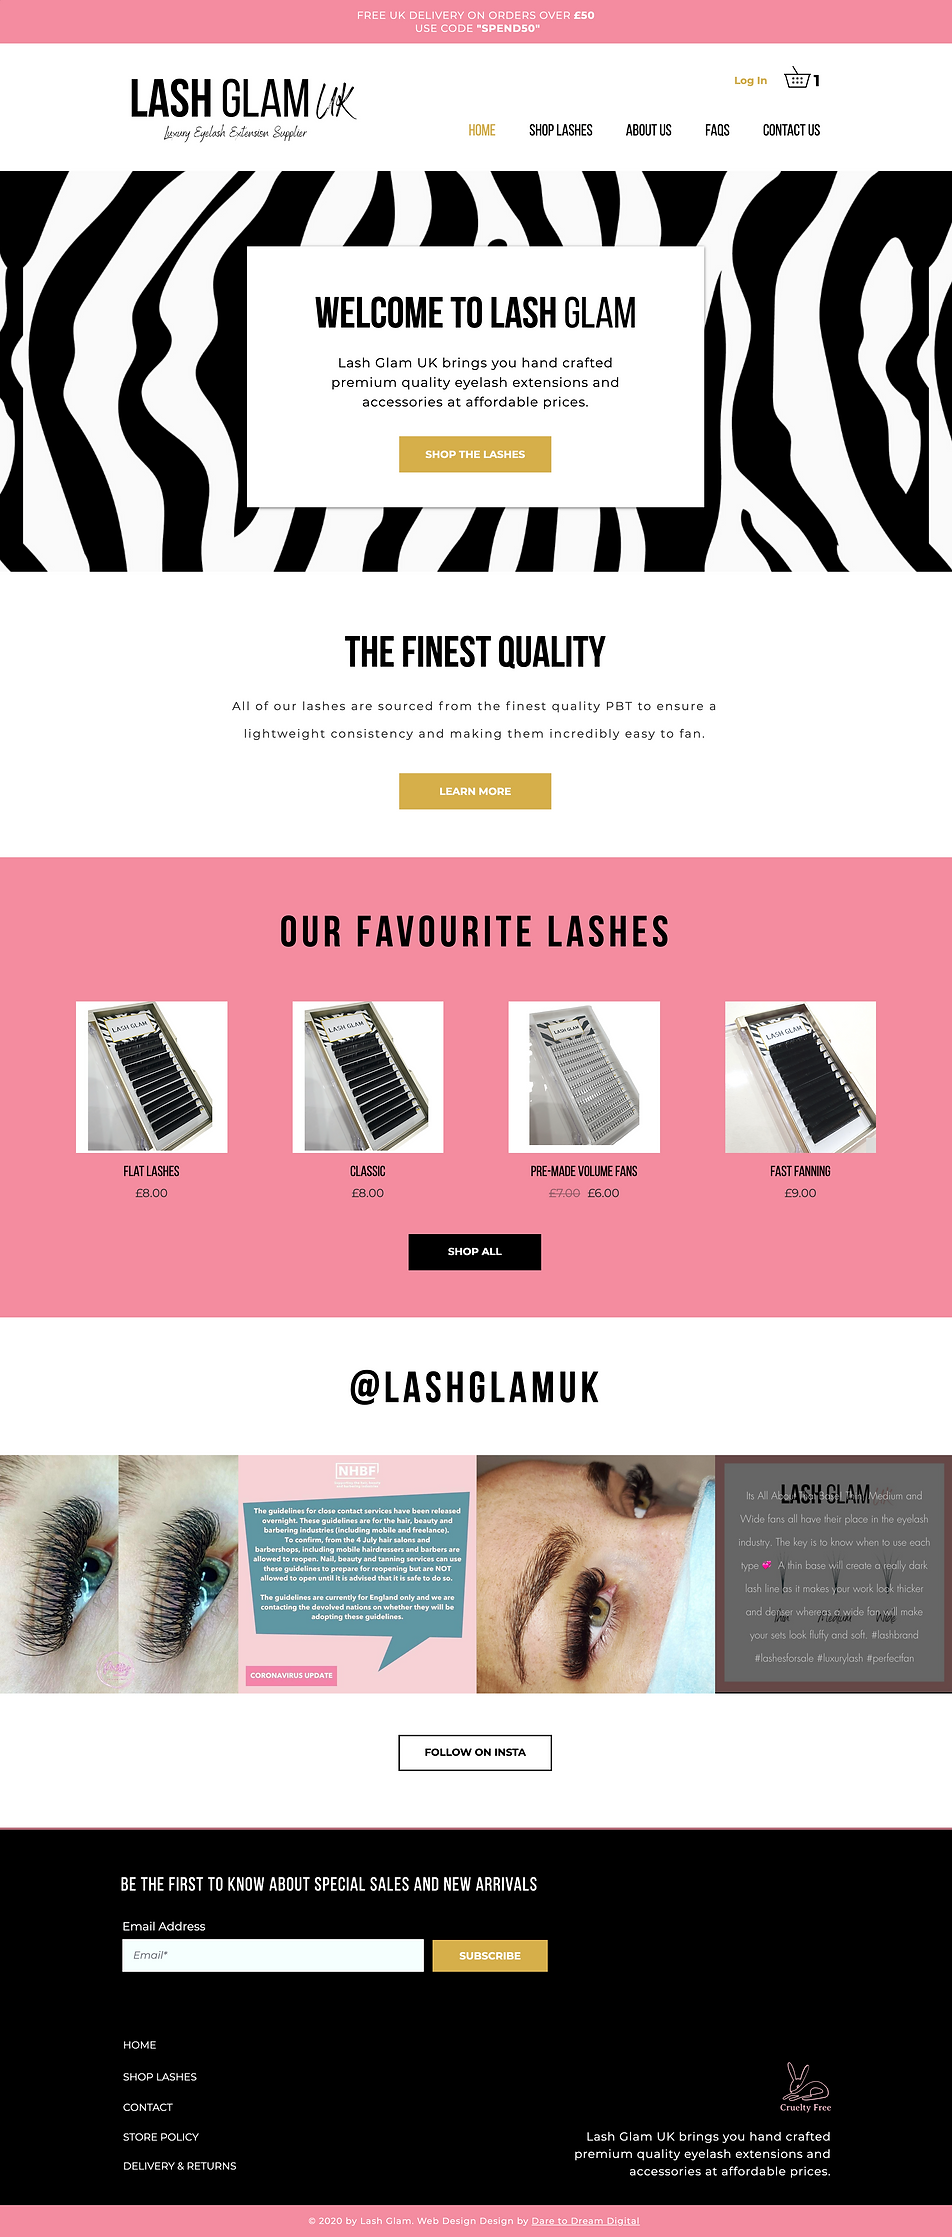 Lash_Glam_Lash_Extensions_Luxury_Eyelash